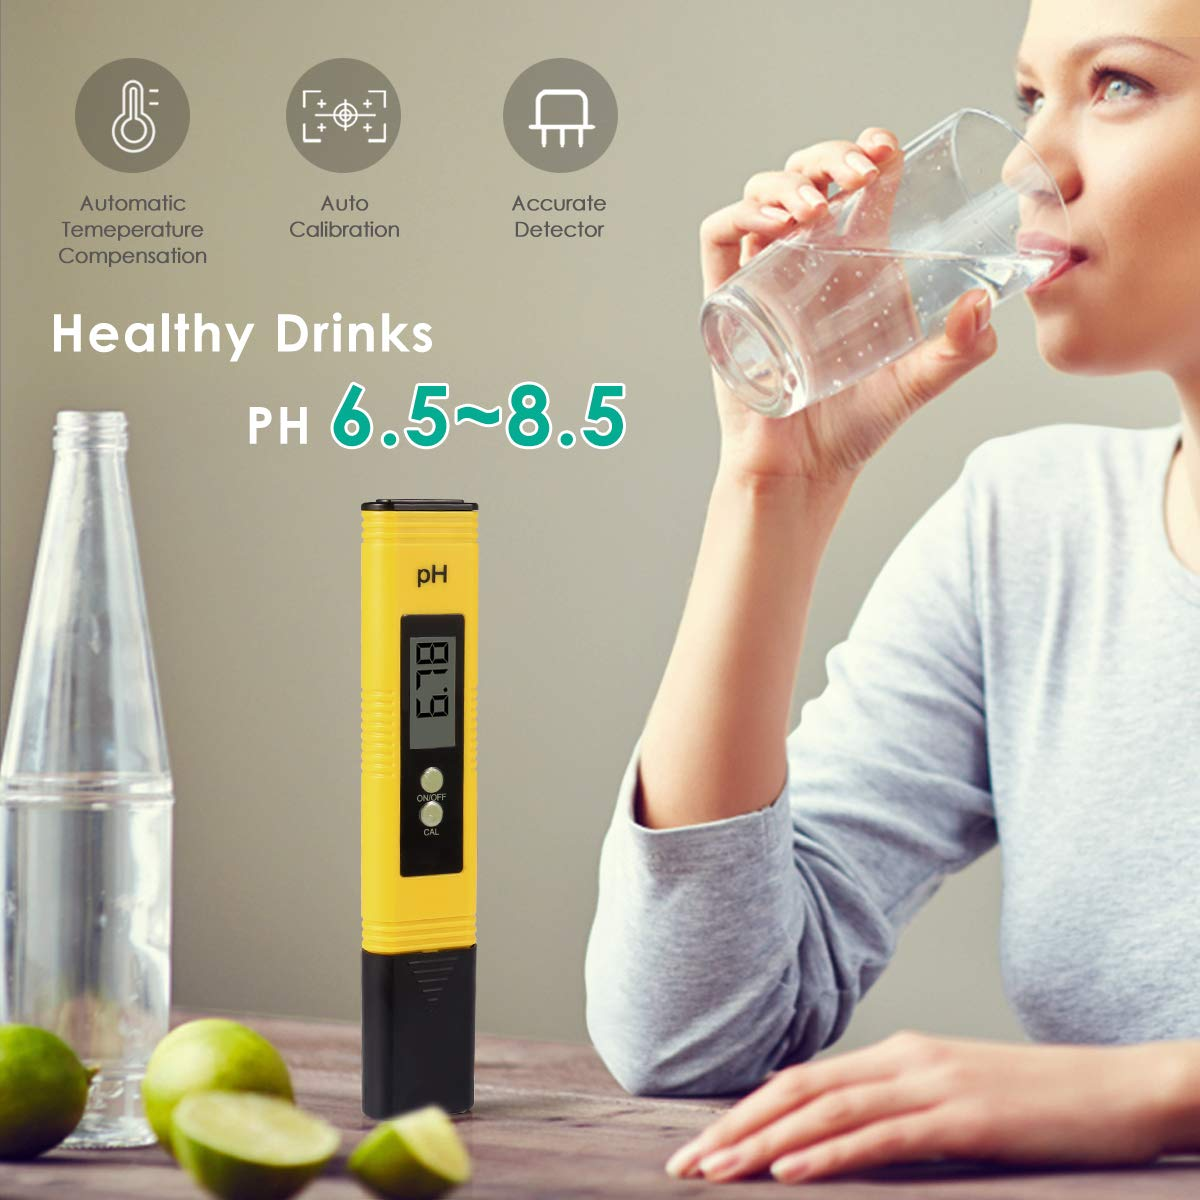 Water Quality Tester with Calibration Solution Powder PH Accuracy 0.01 Measurement for 0-14 Measurement Range for Household Drinking,Food Brewing,Hydroponics,Aquariums,Pools,Spa,Lab Digital PH Meter